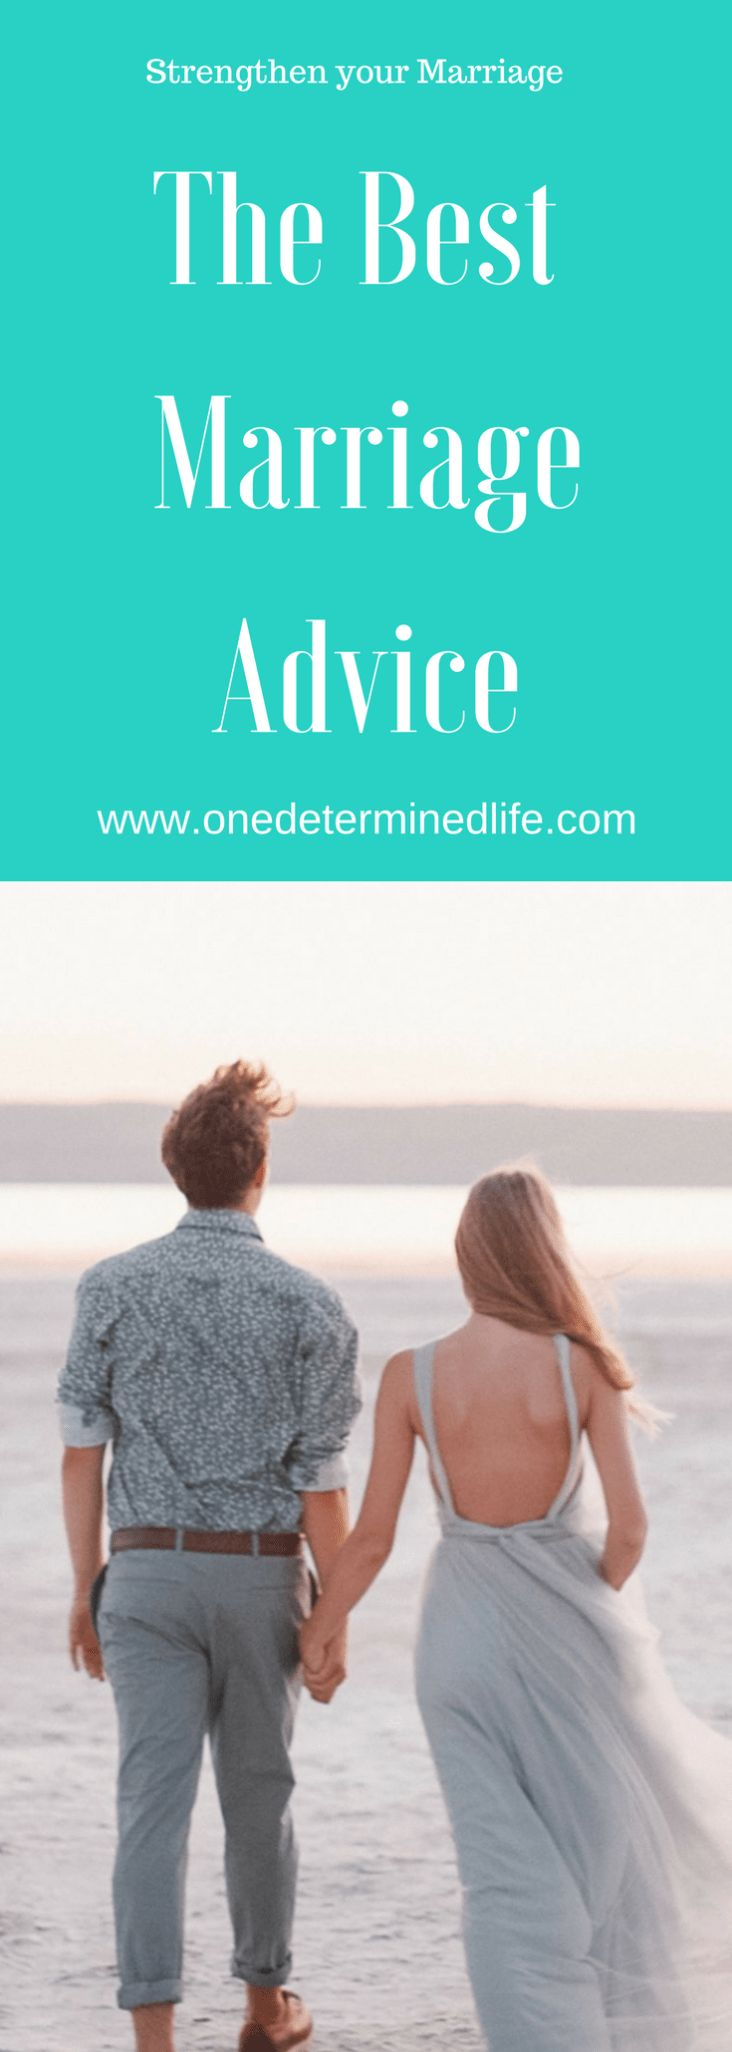 the best marriage advice, christian marriage advice, marriage advice for newlyweds